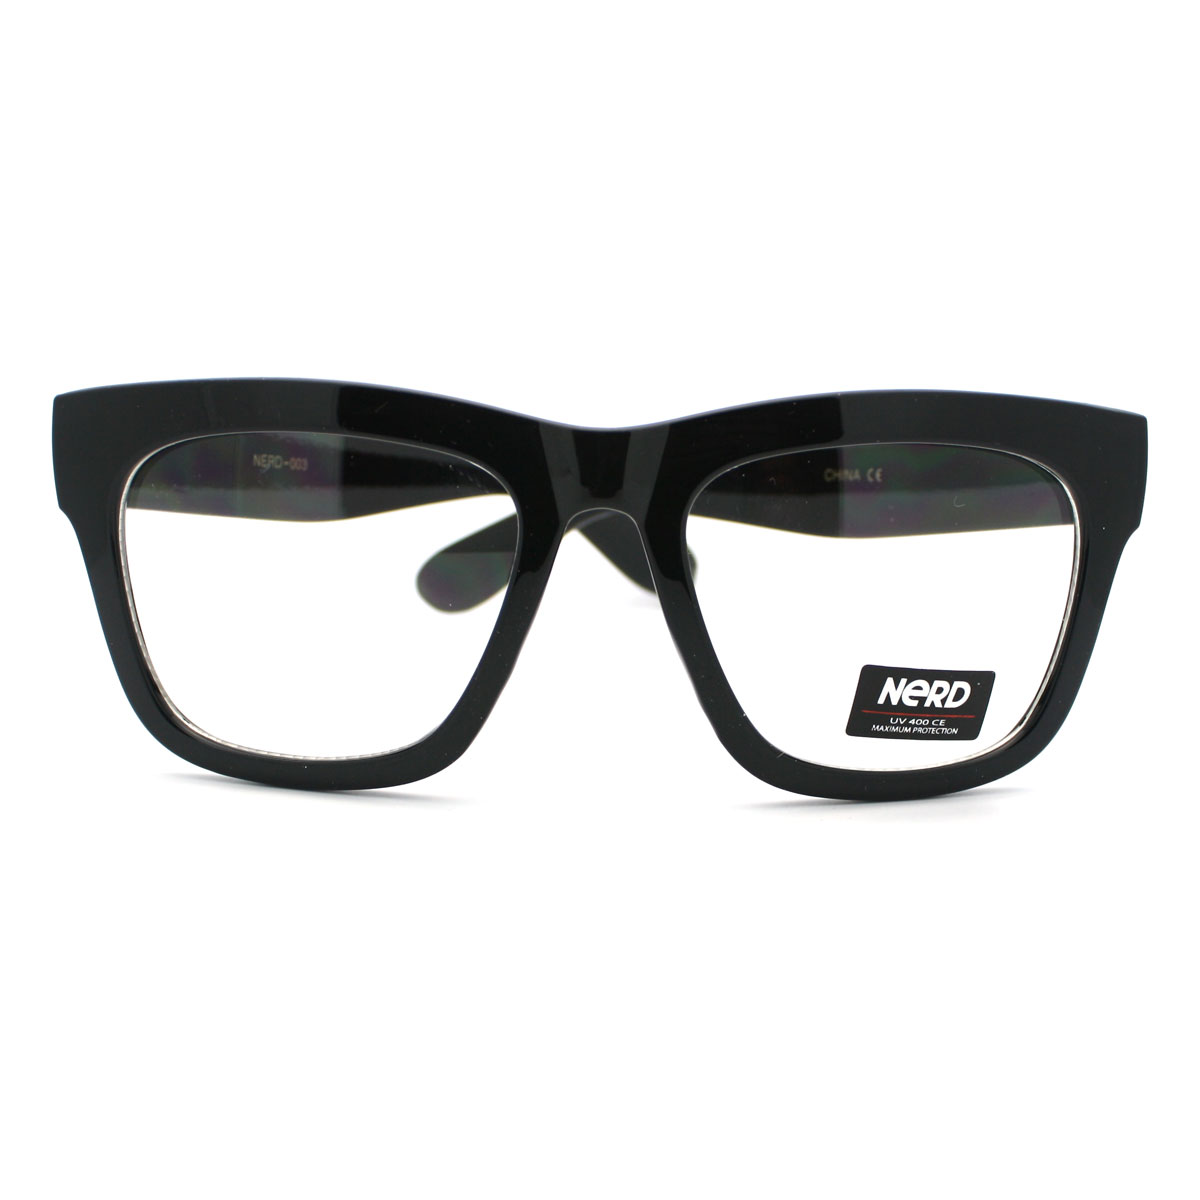 Glasses Frames Thick Black : New Black Thick Eyeglass Frame Oversized Unisex Optical ...